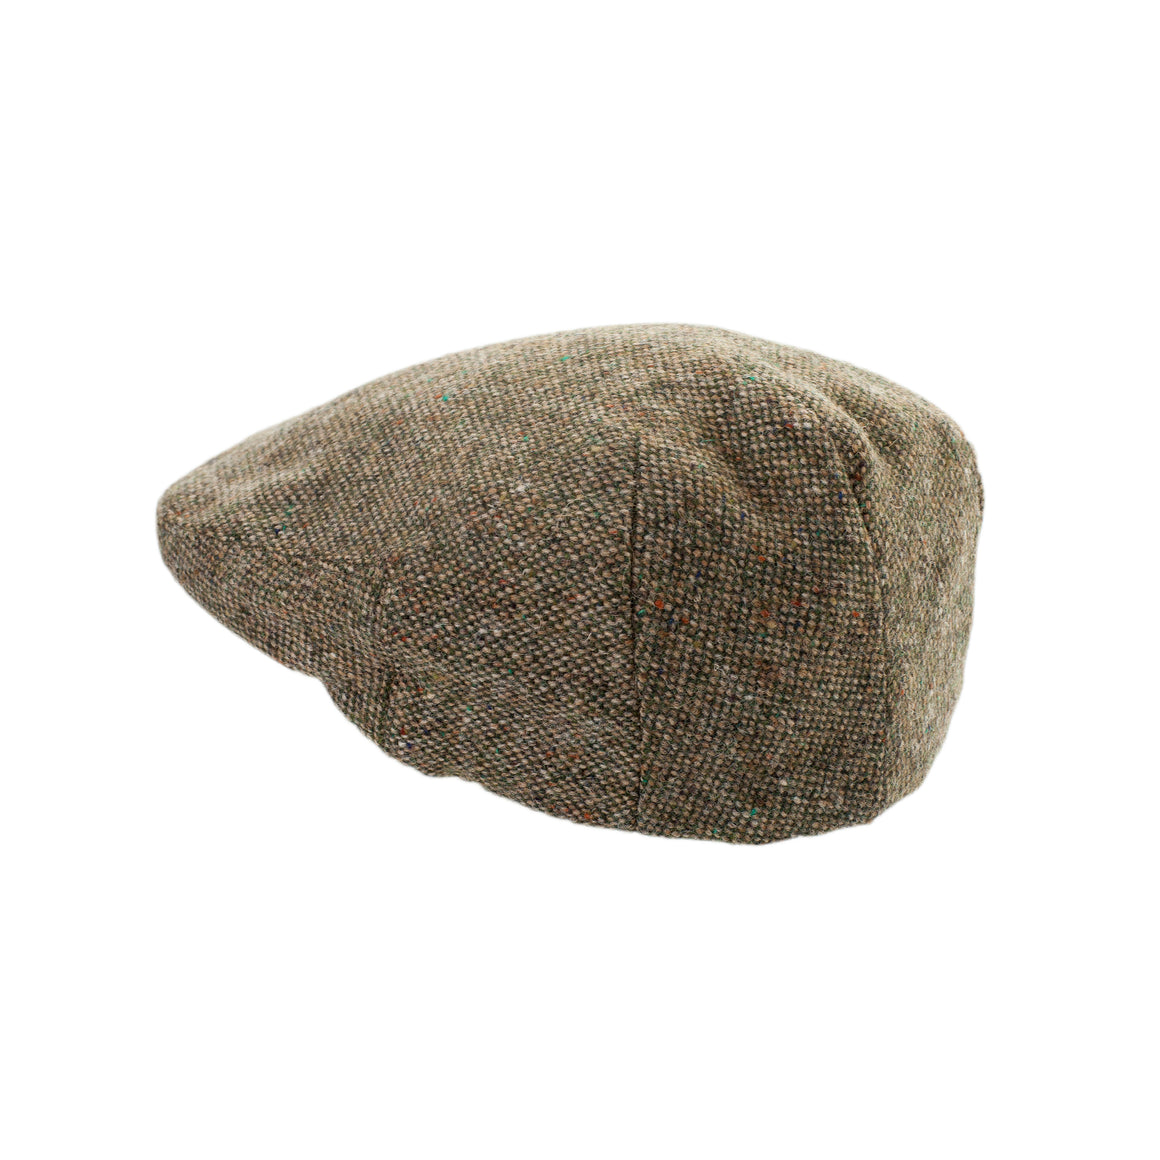 Hereford Pure New Wool Tweed Cap for Men in 5028